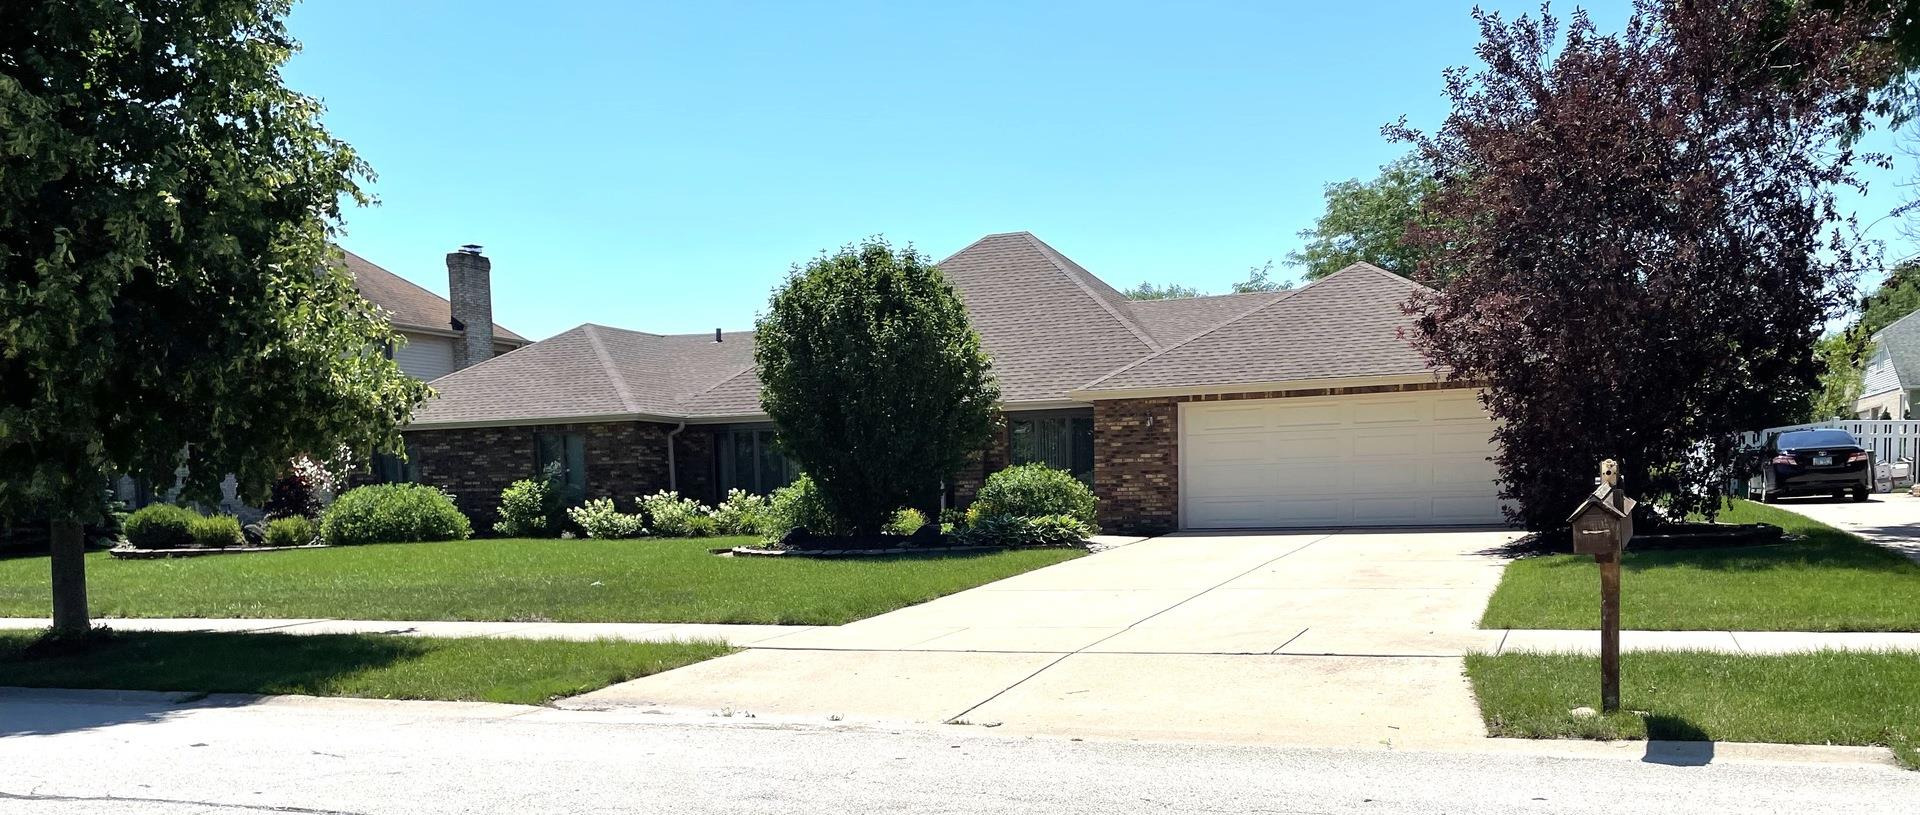 14408 Wooded Path Lane, Orland Park, IL 60462 - #: 11149032